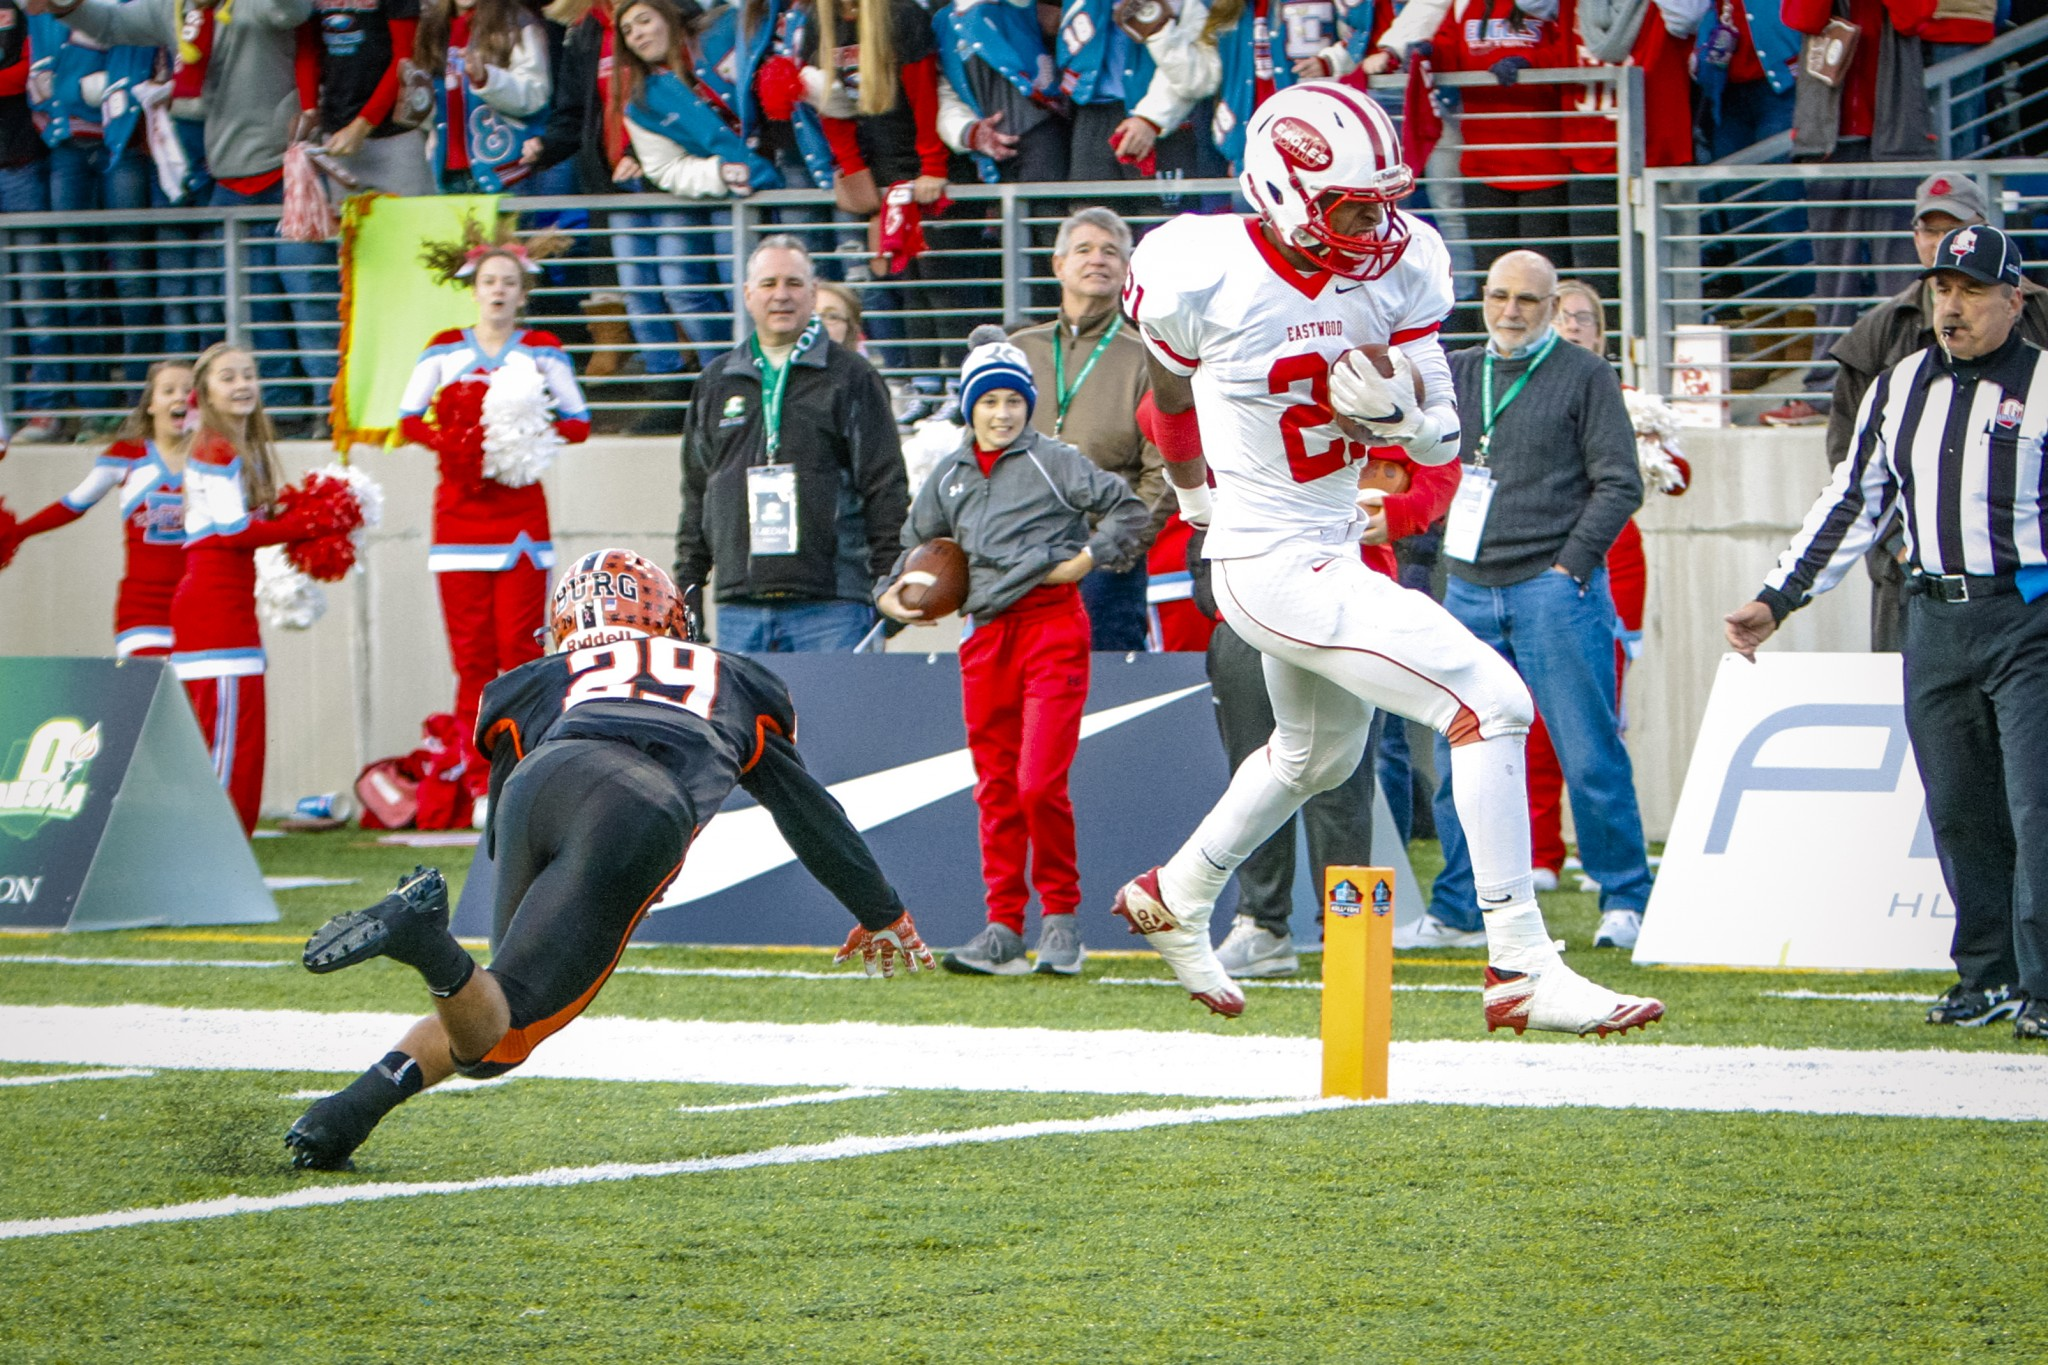 """Then-Eastwood junior Ceyleon Damron scores during the Eagle's 21-14 overtime loss to Wheelersburg in the 2017 Division V state championship game at the Tom Benson Hall of Fame Stadium. (Press file photo by Lee Welch/<a href=""""http://www.FamilyPhotoGroup.com"""">www.FamilyPhotoGroup.com</a>)"""